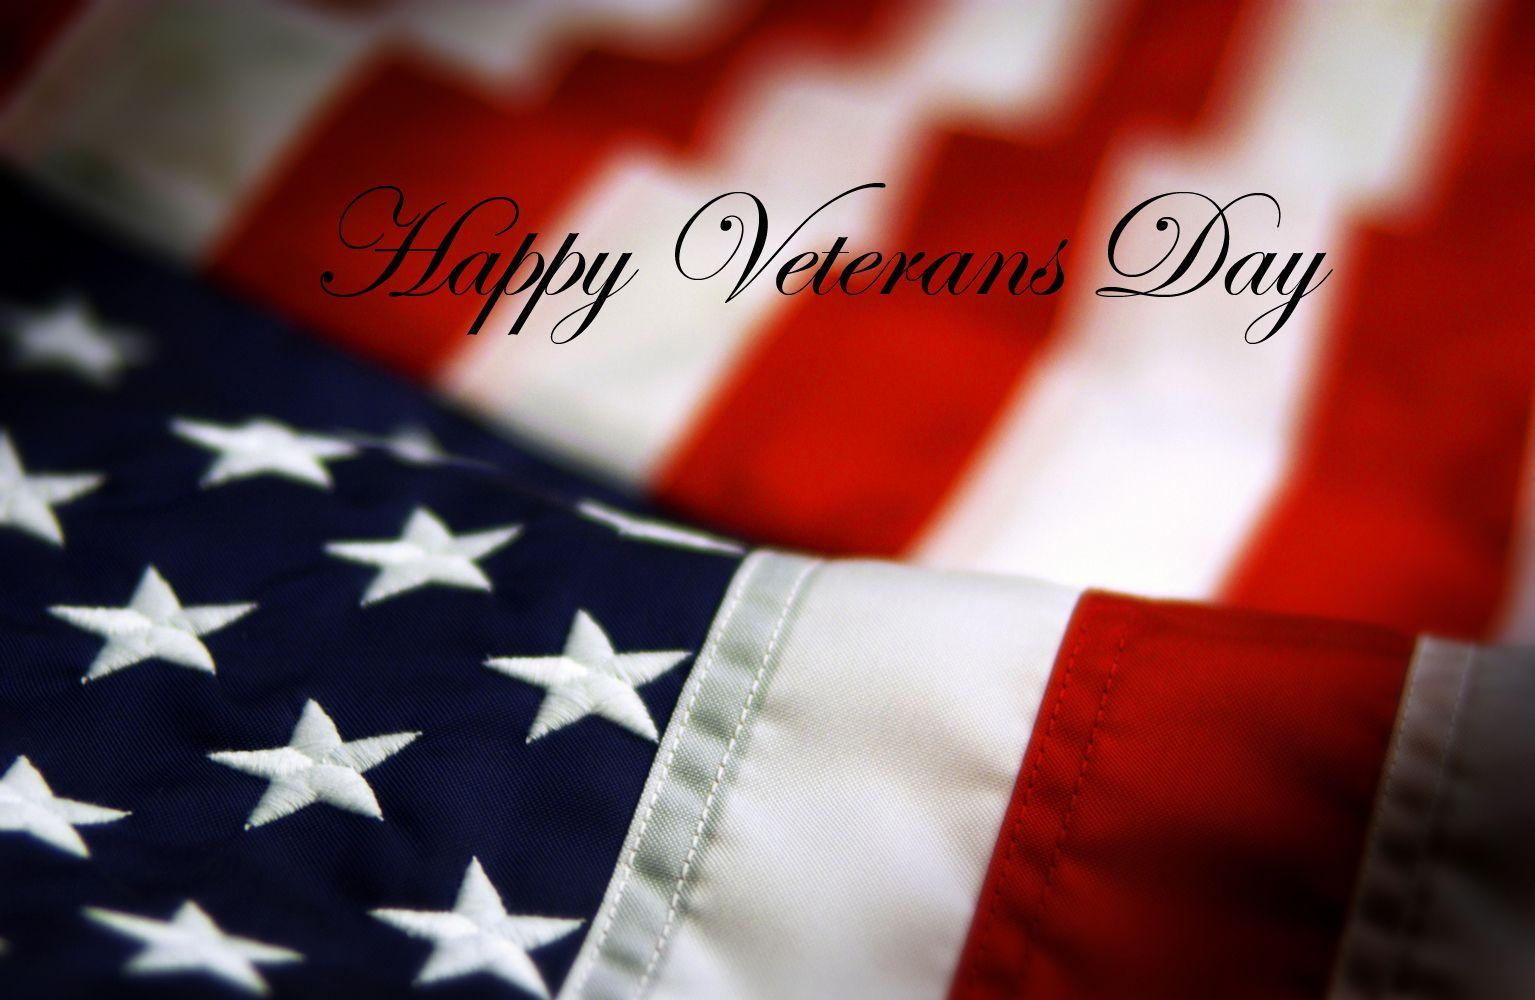 Happy Veterans Day Usa Honoring Hd Pc Wallpaper